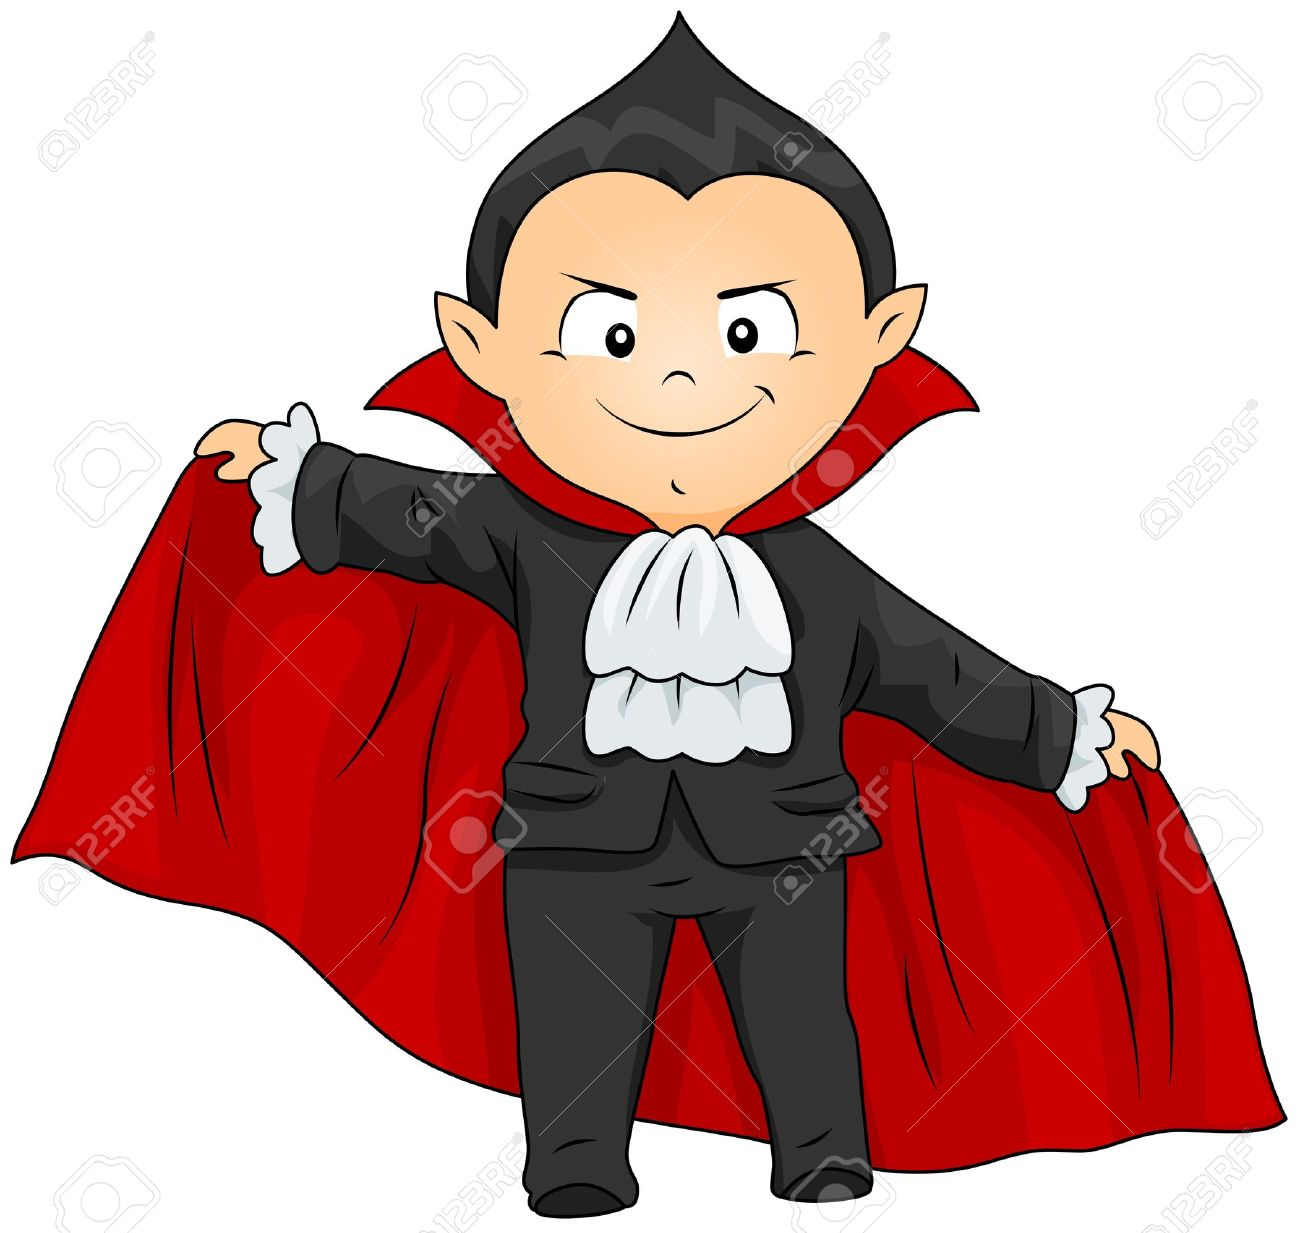 Vampir Clipart | Free download best Vampir Clipart on ... Vampire Cape Clipart